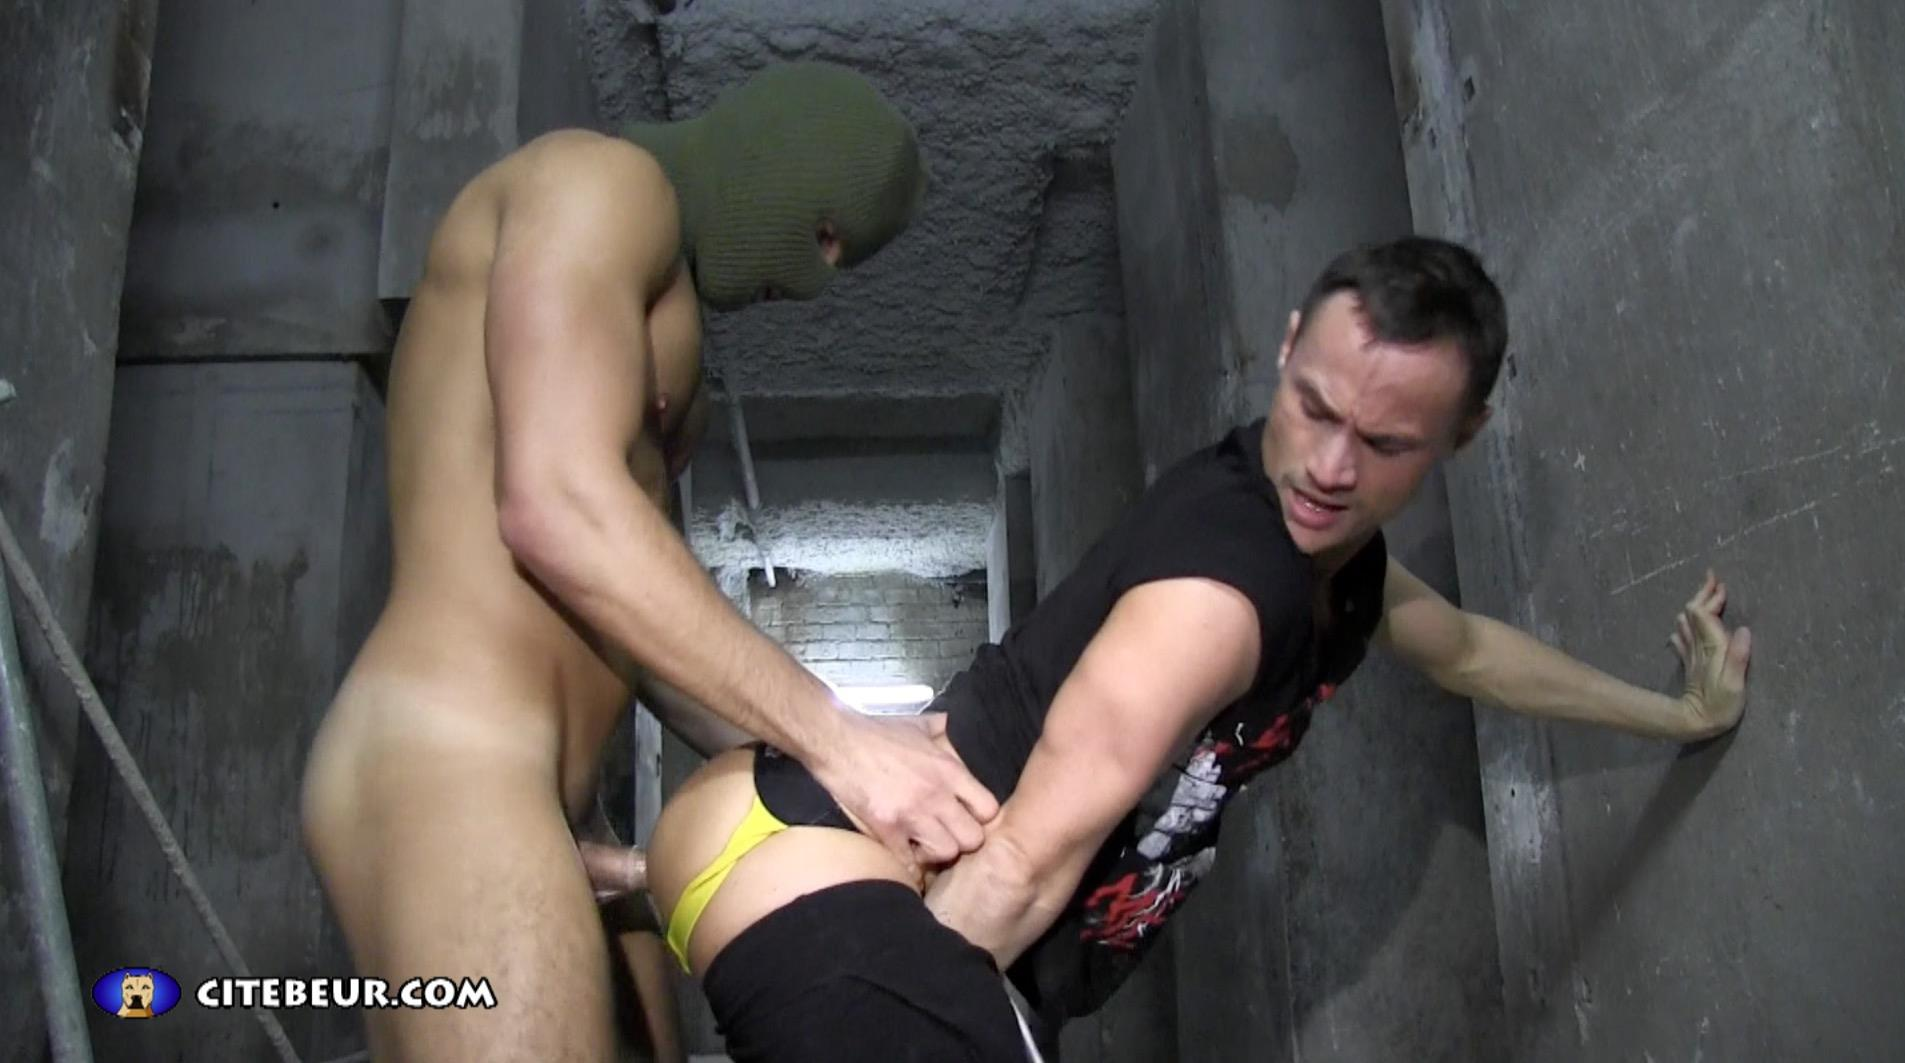 Citebeur-Free-Video-Big-Arab-Cock-Amateur-Gay-Porn-11 Sucking And Getting Fucked By Big Arab Cock In The Paris Slums